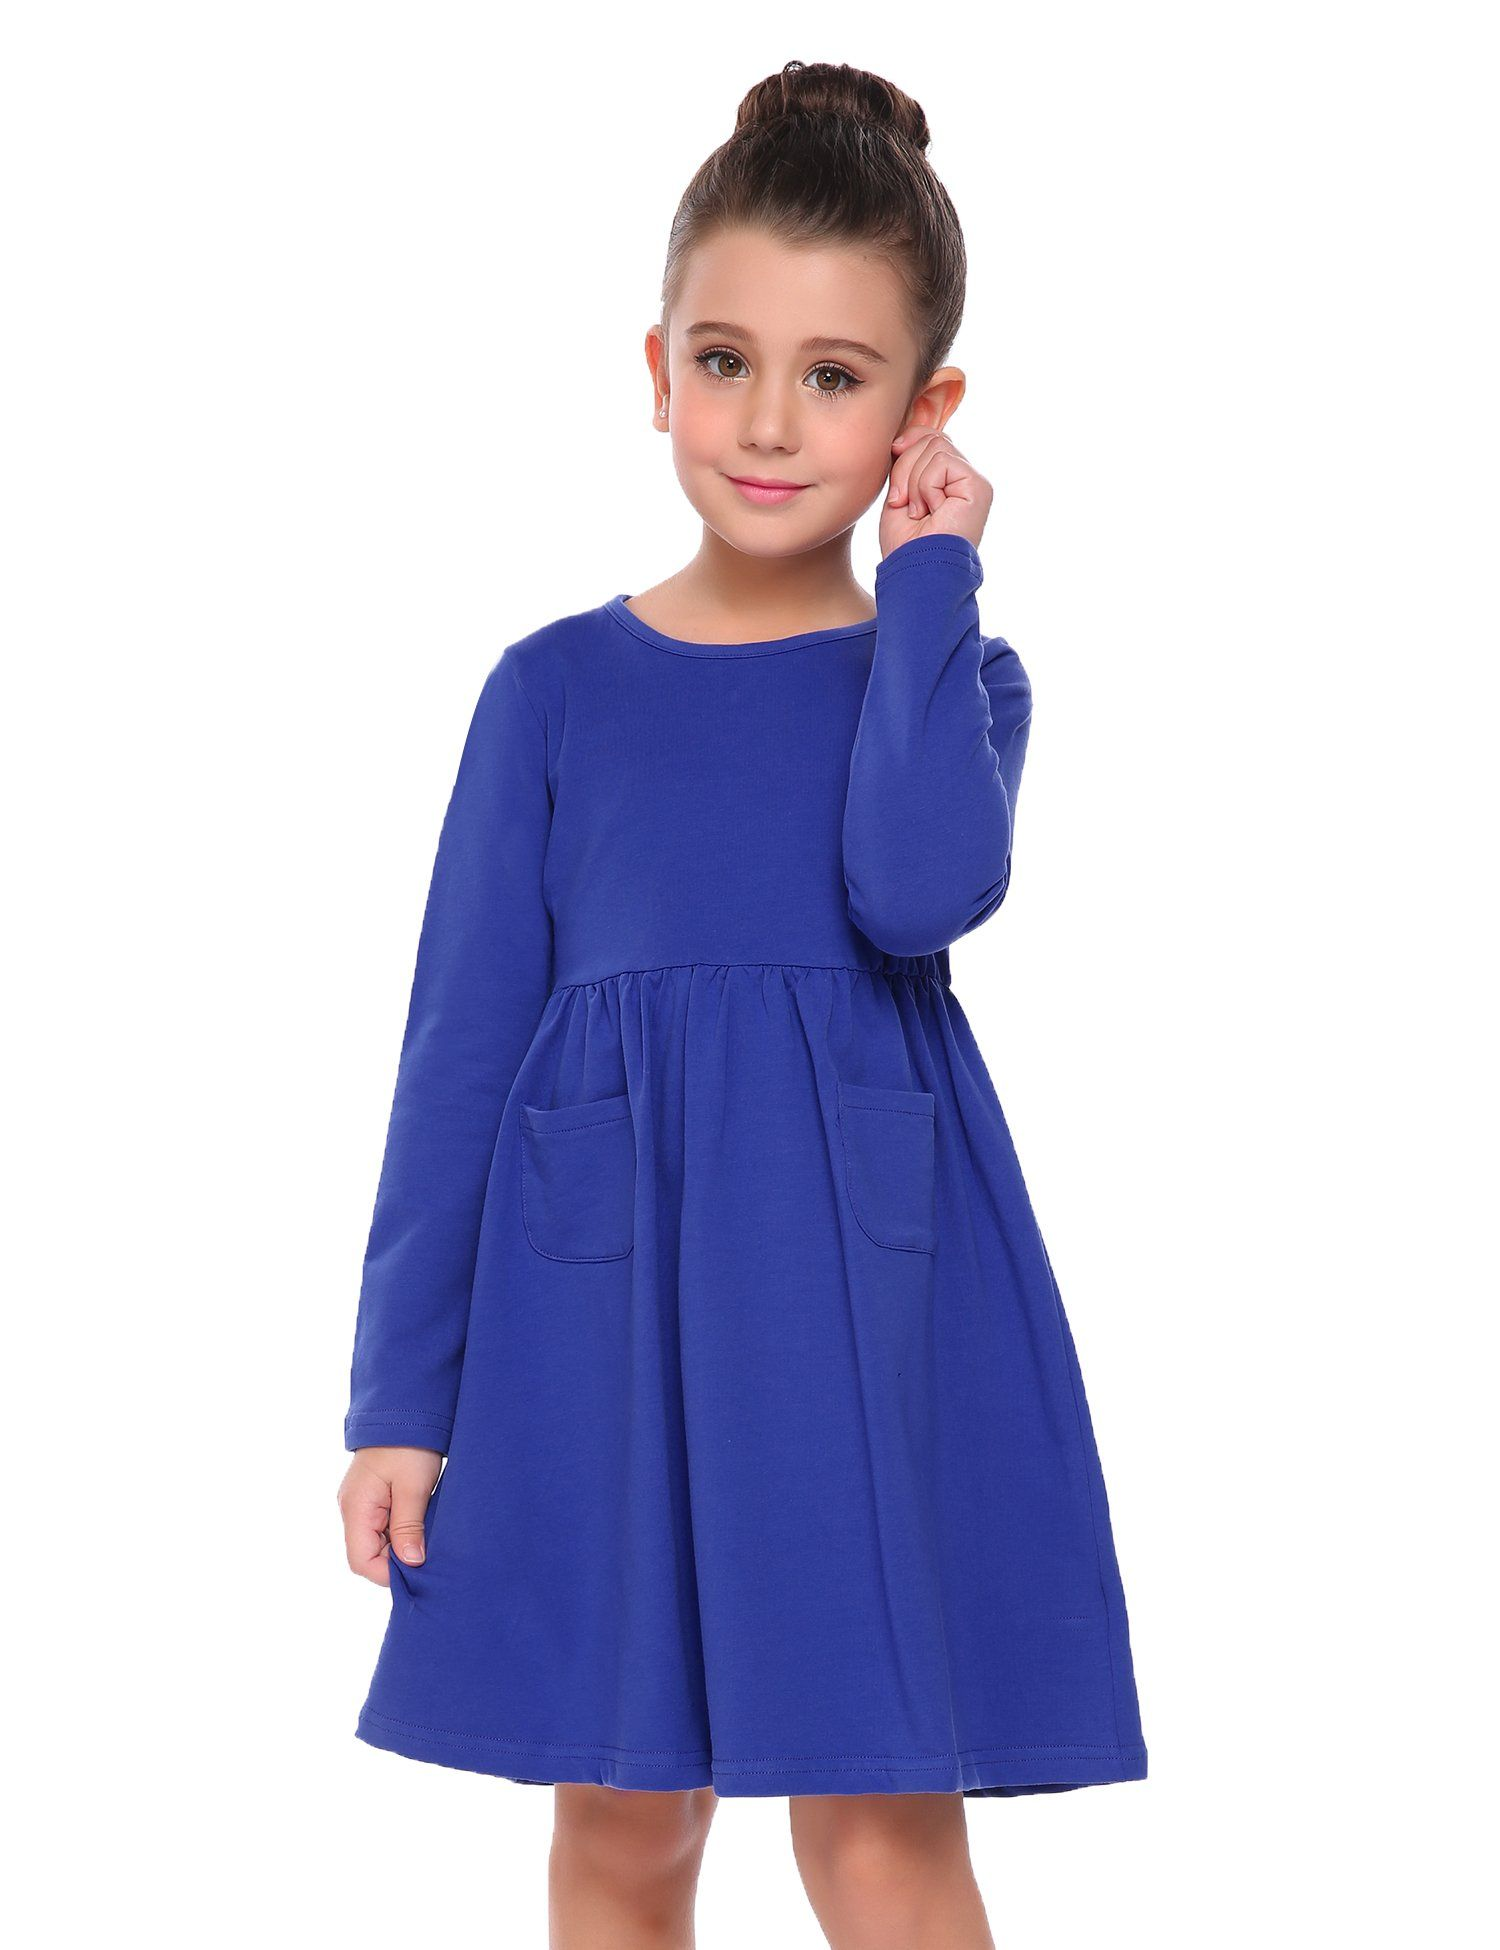 b758ee91a9d Arshiner Little Girls Long Sleeve Solid Color Casual Skater Dress.  Material  95% Polyester